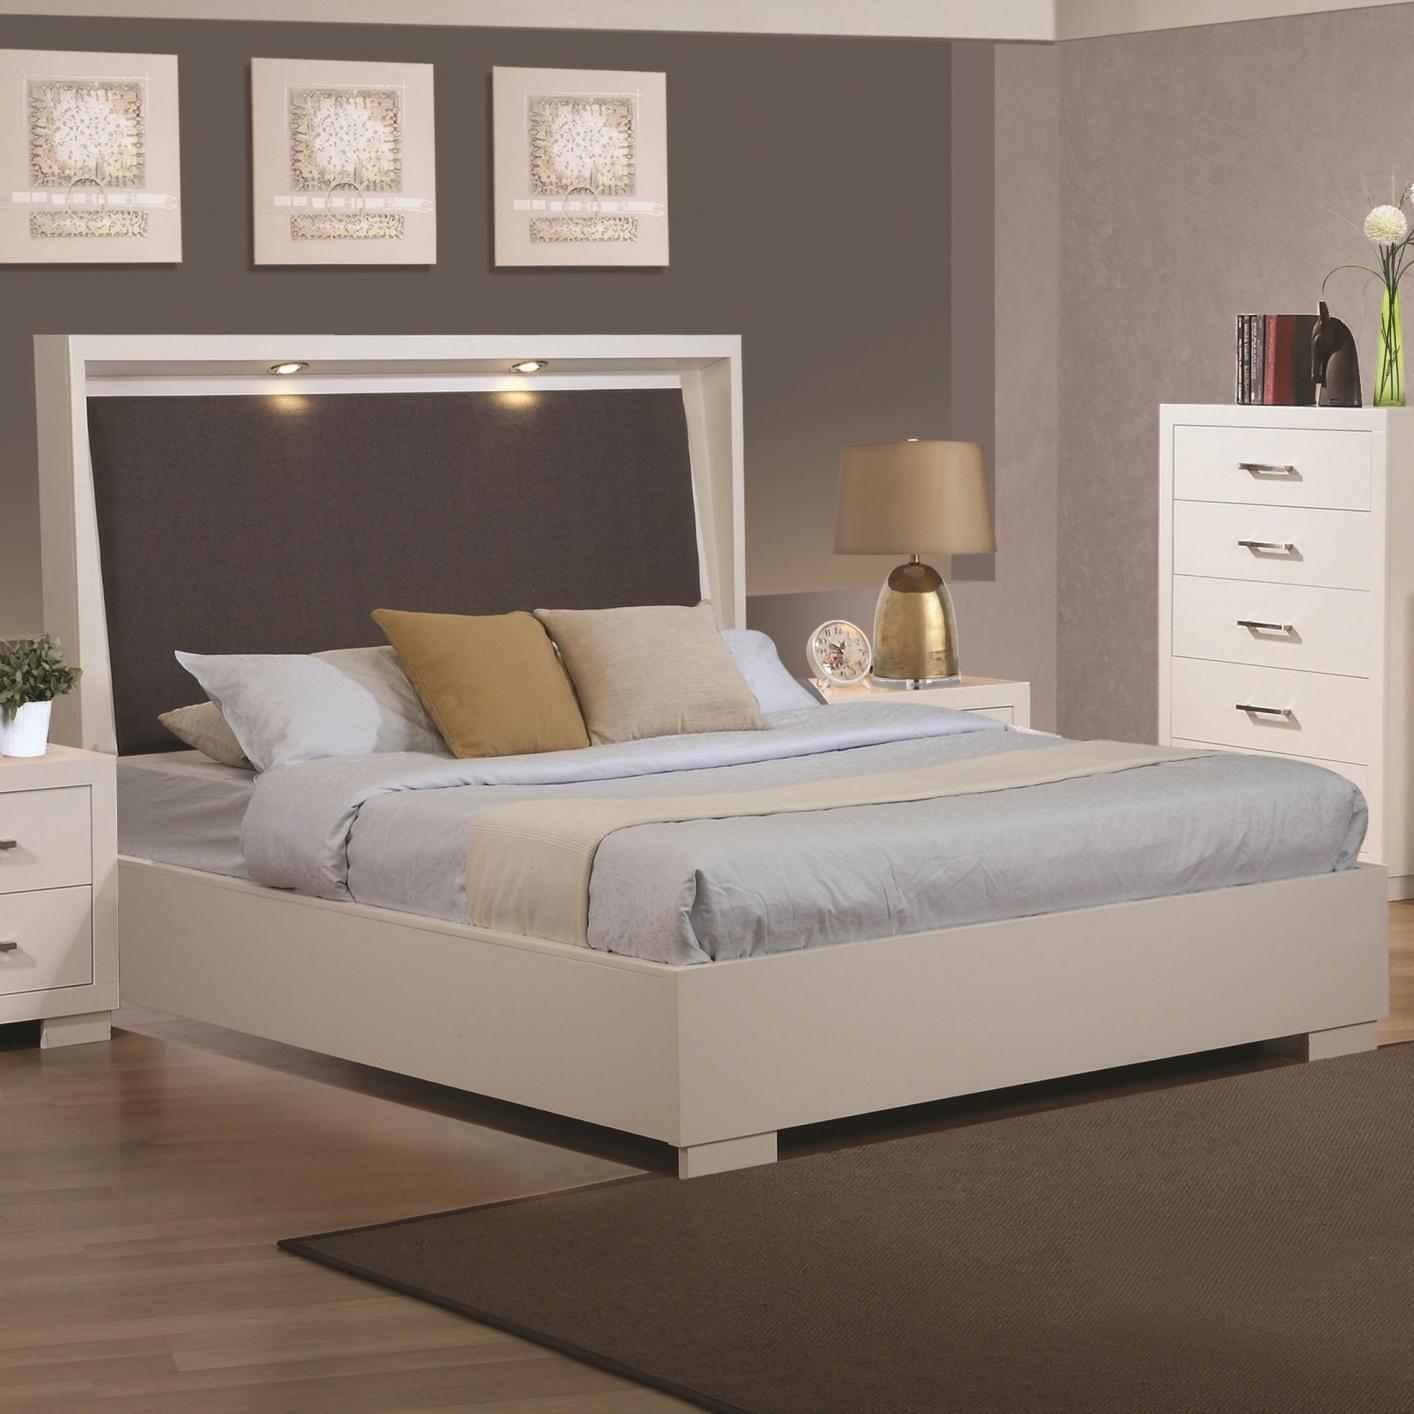 Coaster 200920kw white wood california king size bed for White wood bedroom furniture